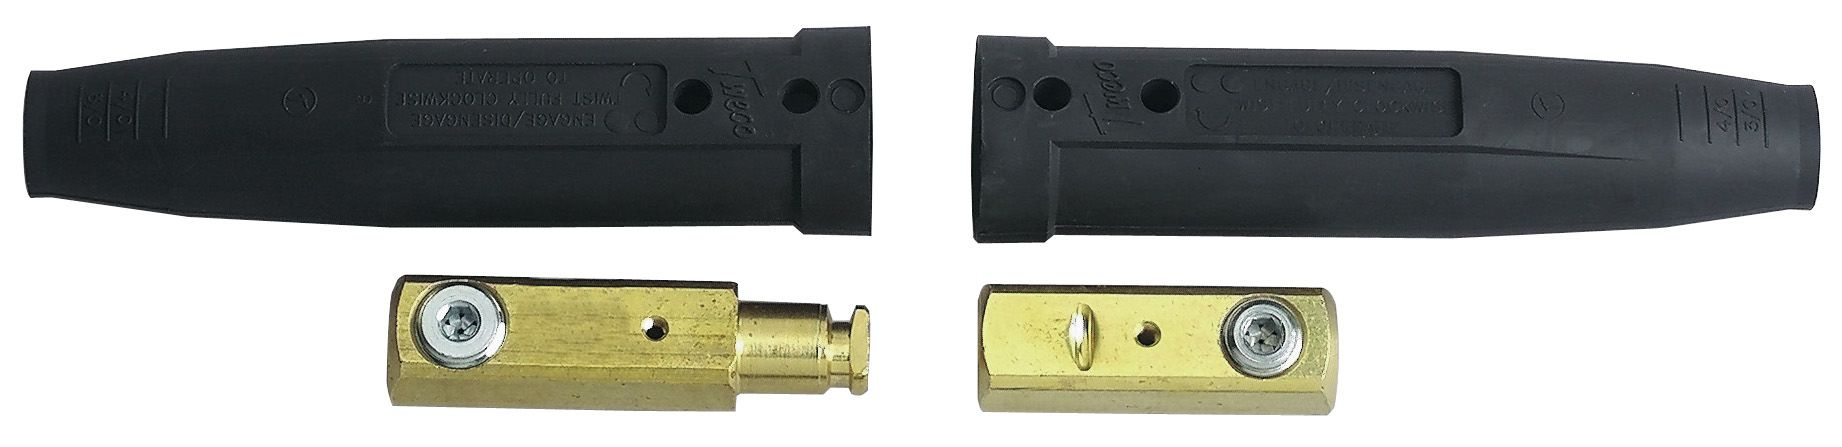 Tweco Weld Cable Connectors (Male/Female) - 1MPC